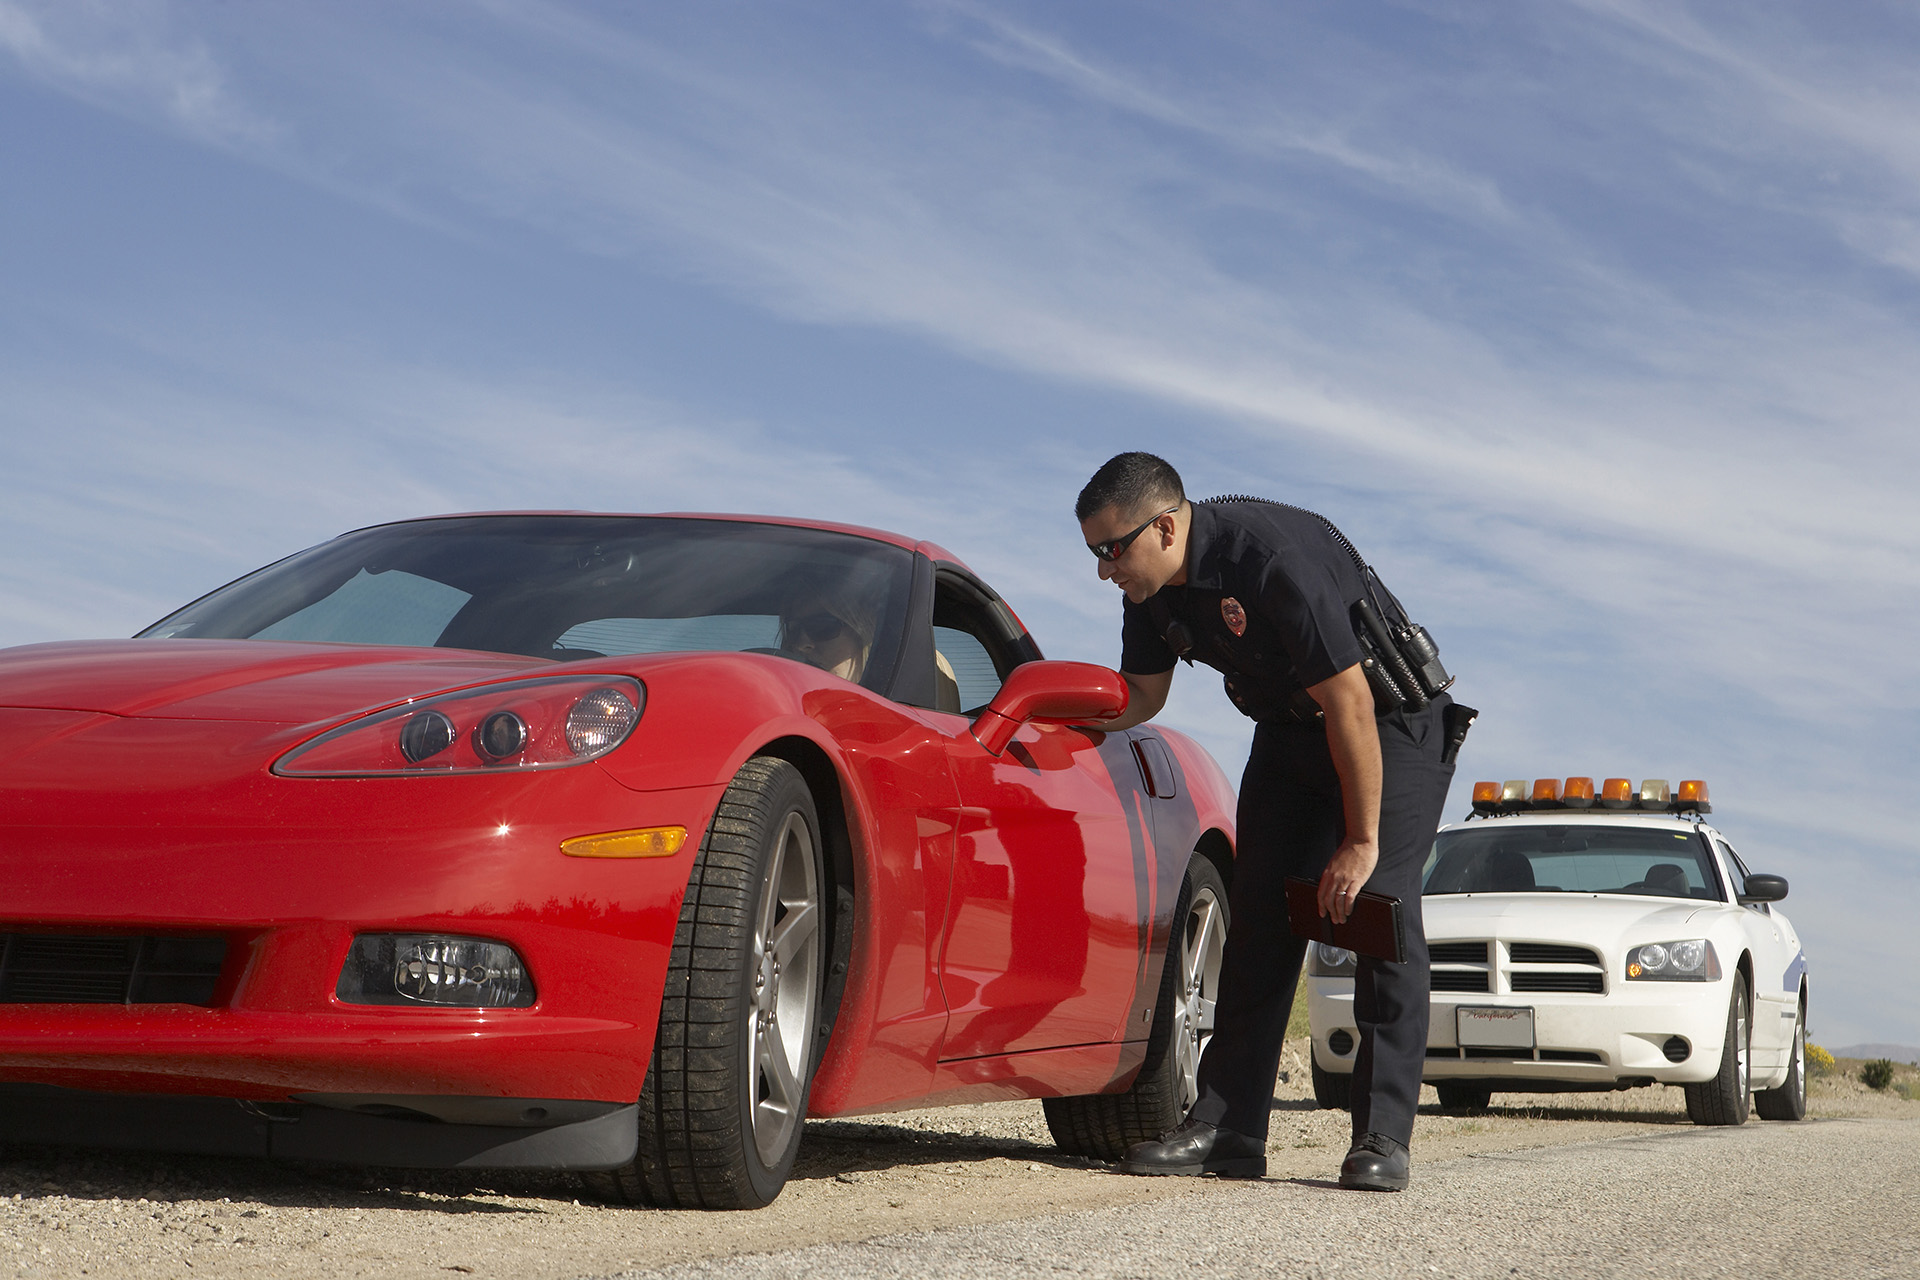 Police Officer Issuing Traffic Ticket to Woman In Red Sports Car